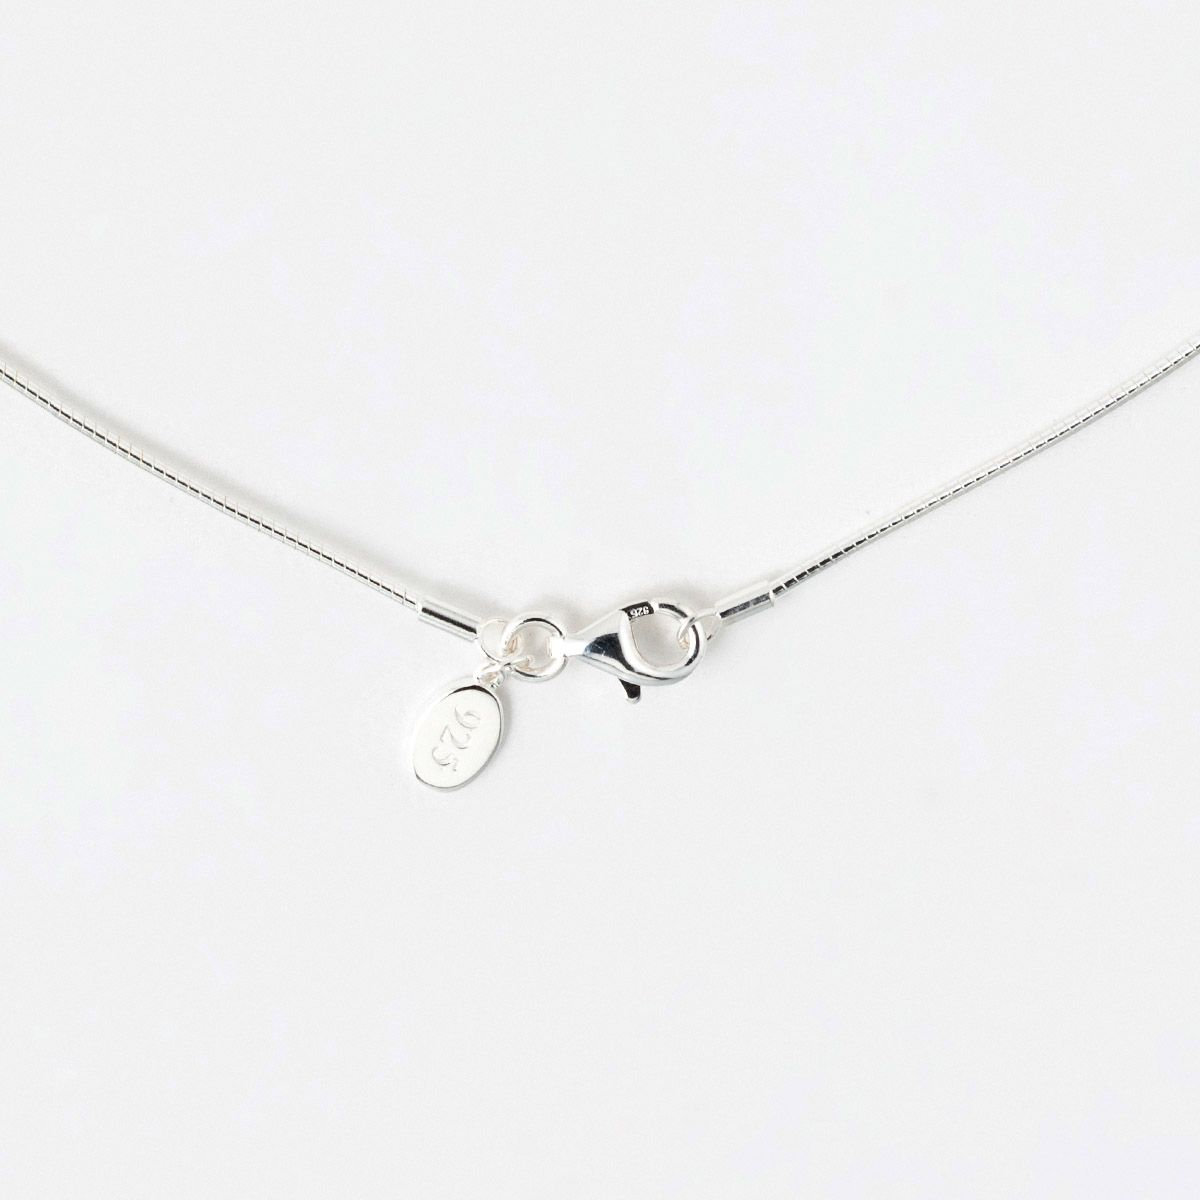 Cosmo Silber - Choker - Silber